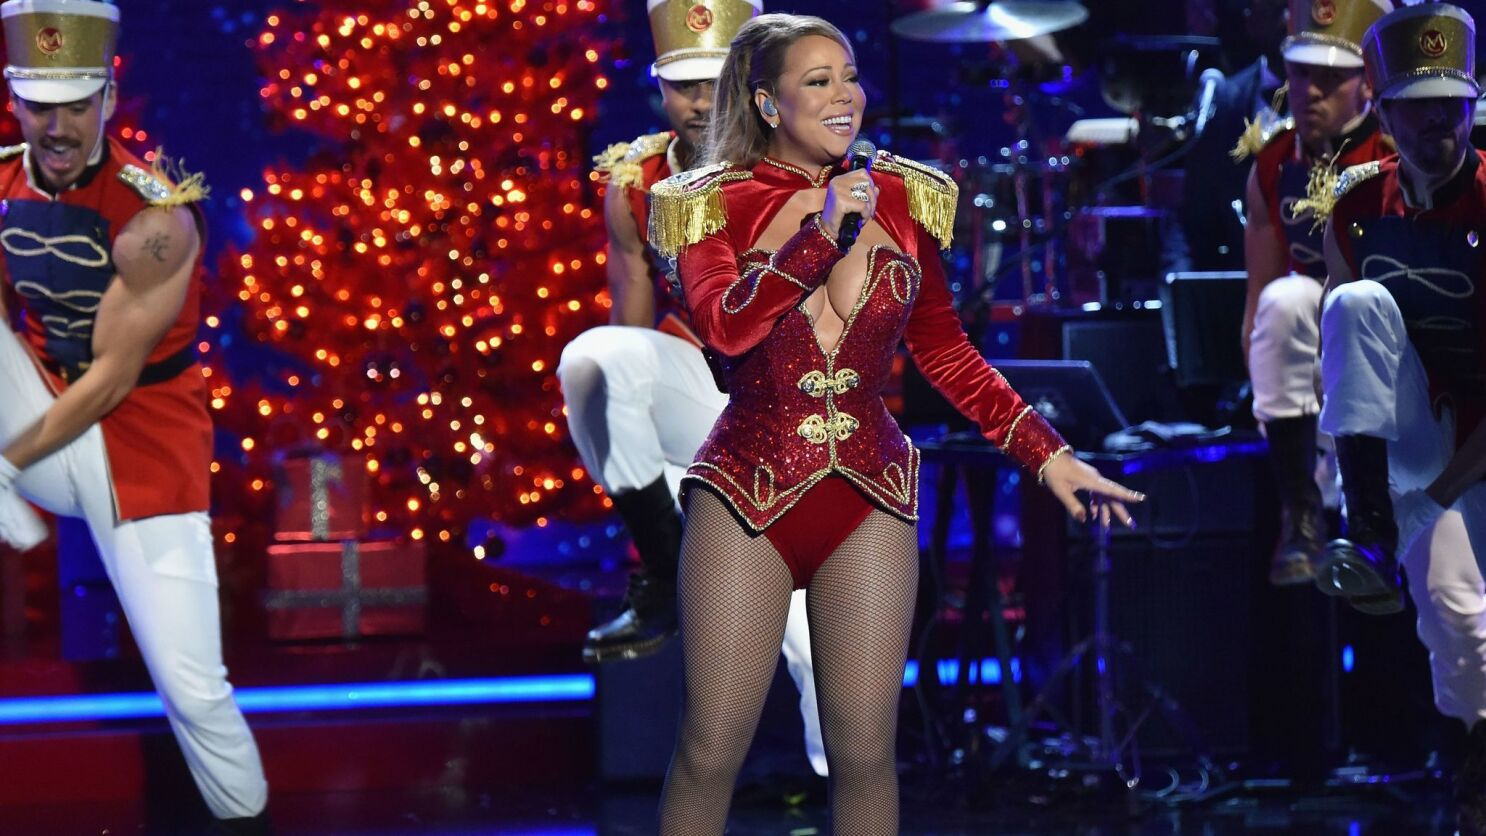 Mariah Carey sets 3 Guinness World Records   The San Diego Union